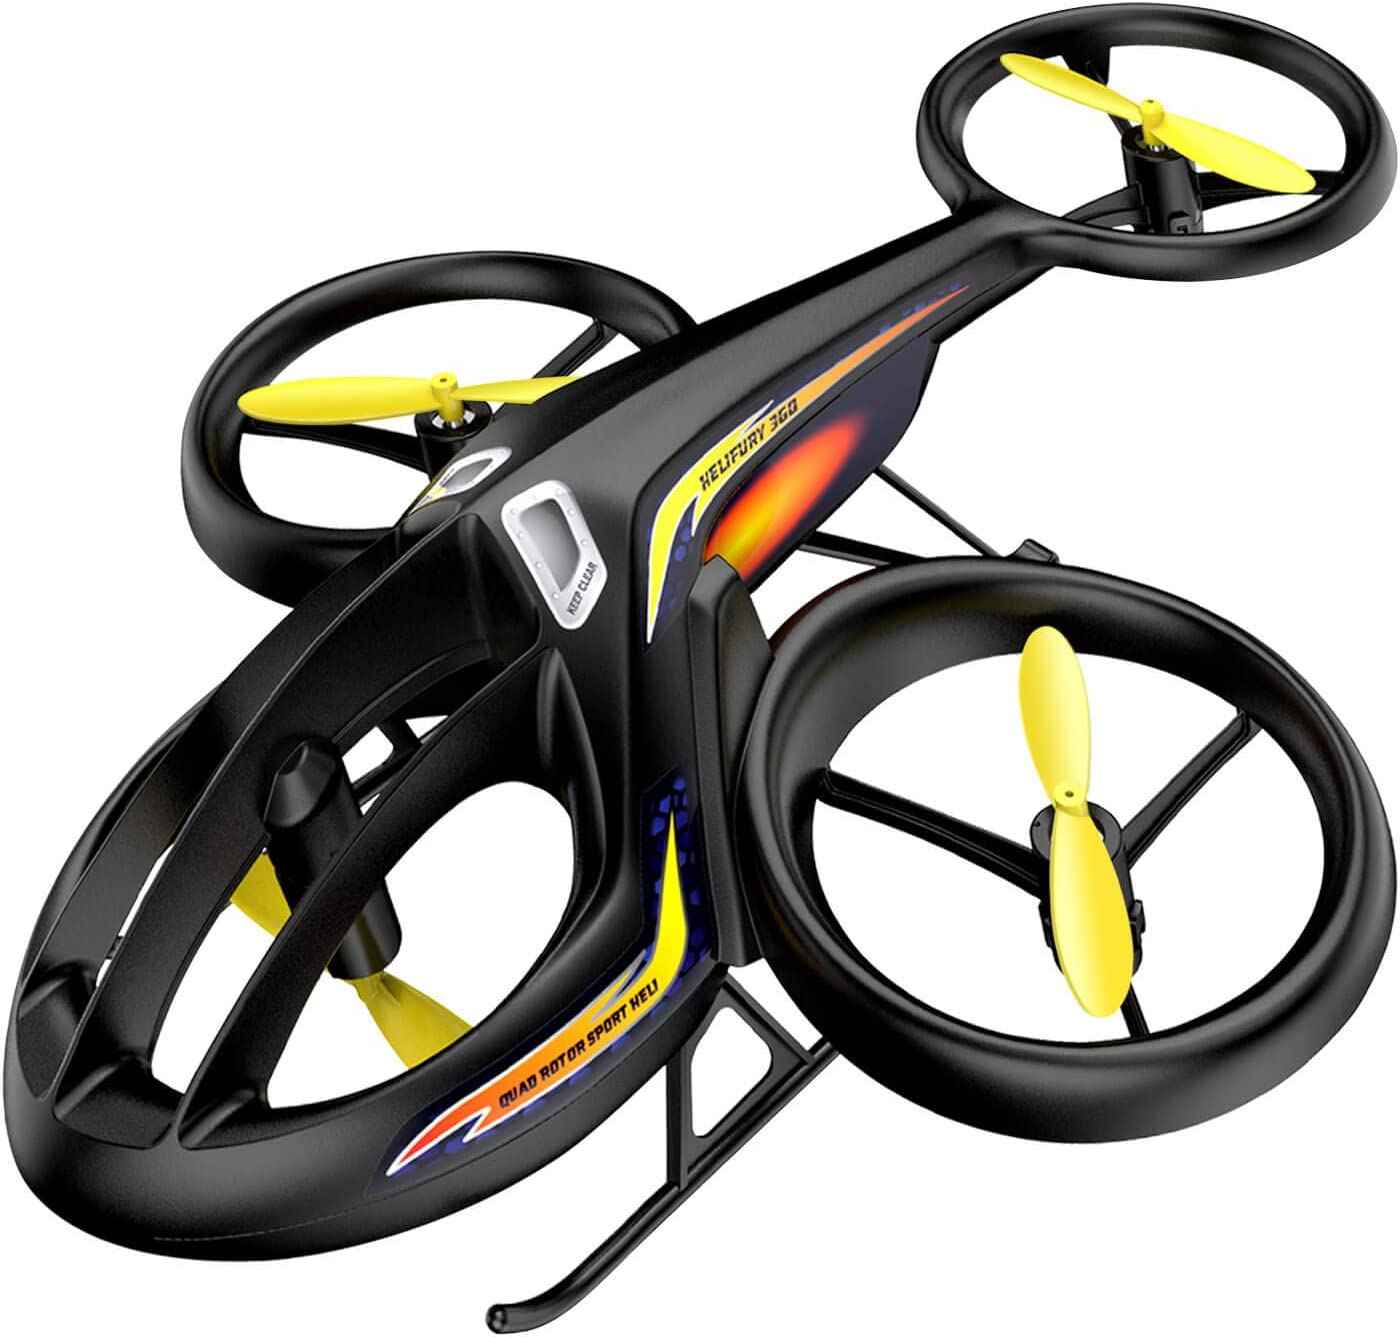 SYMA Latest Remote Control Drone with Gyro and LED